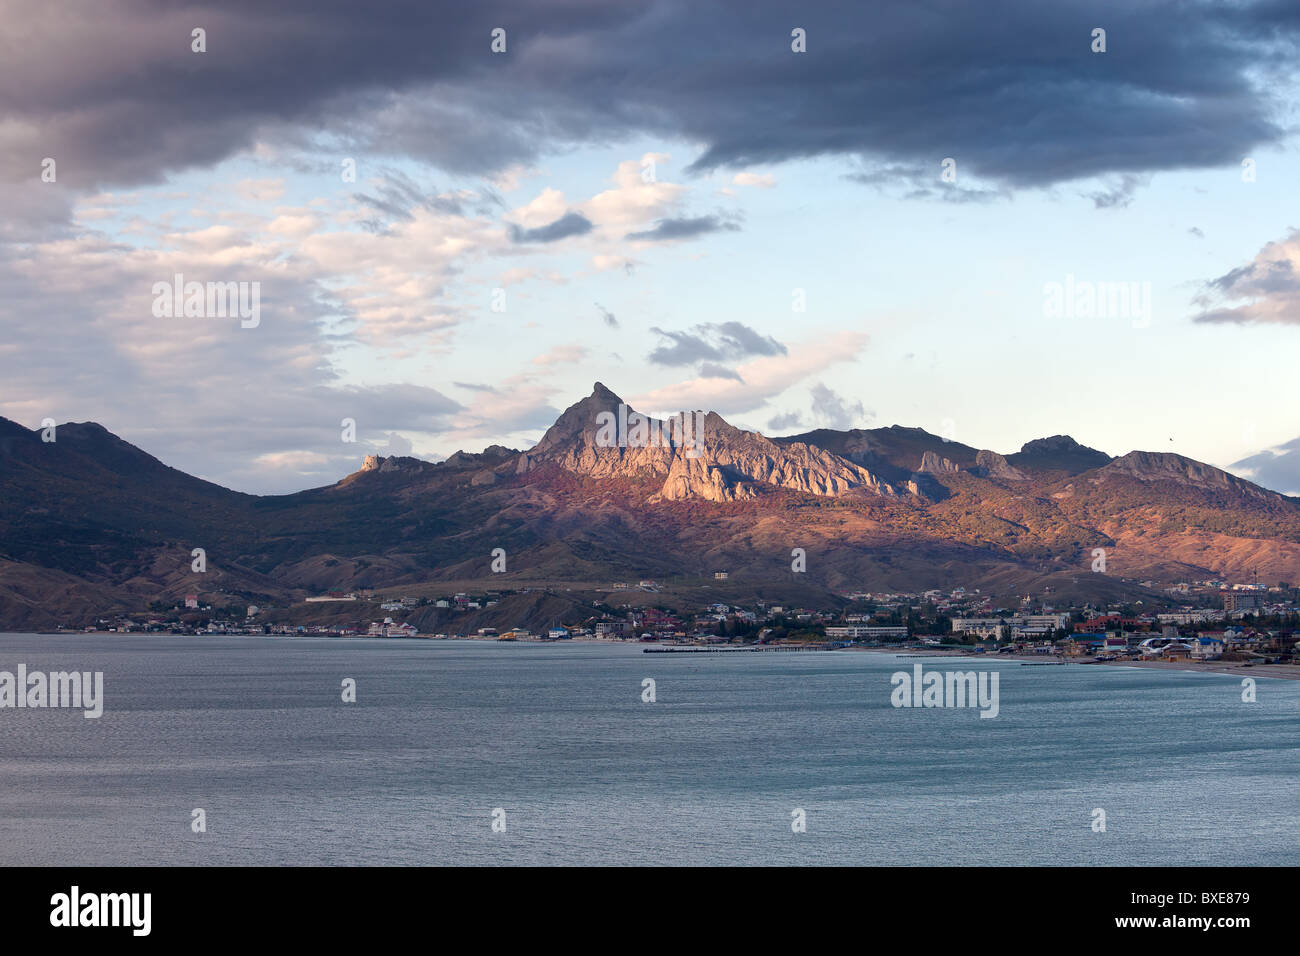 Kara Dag mountain, Crimea, Ukraine - Stock Image